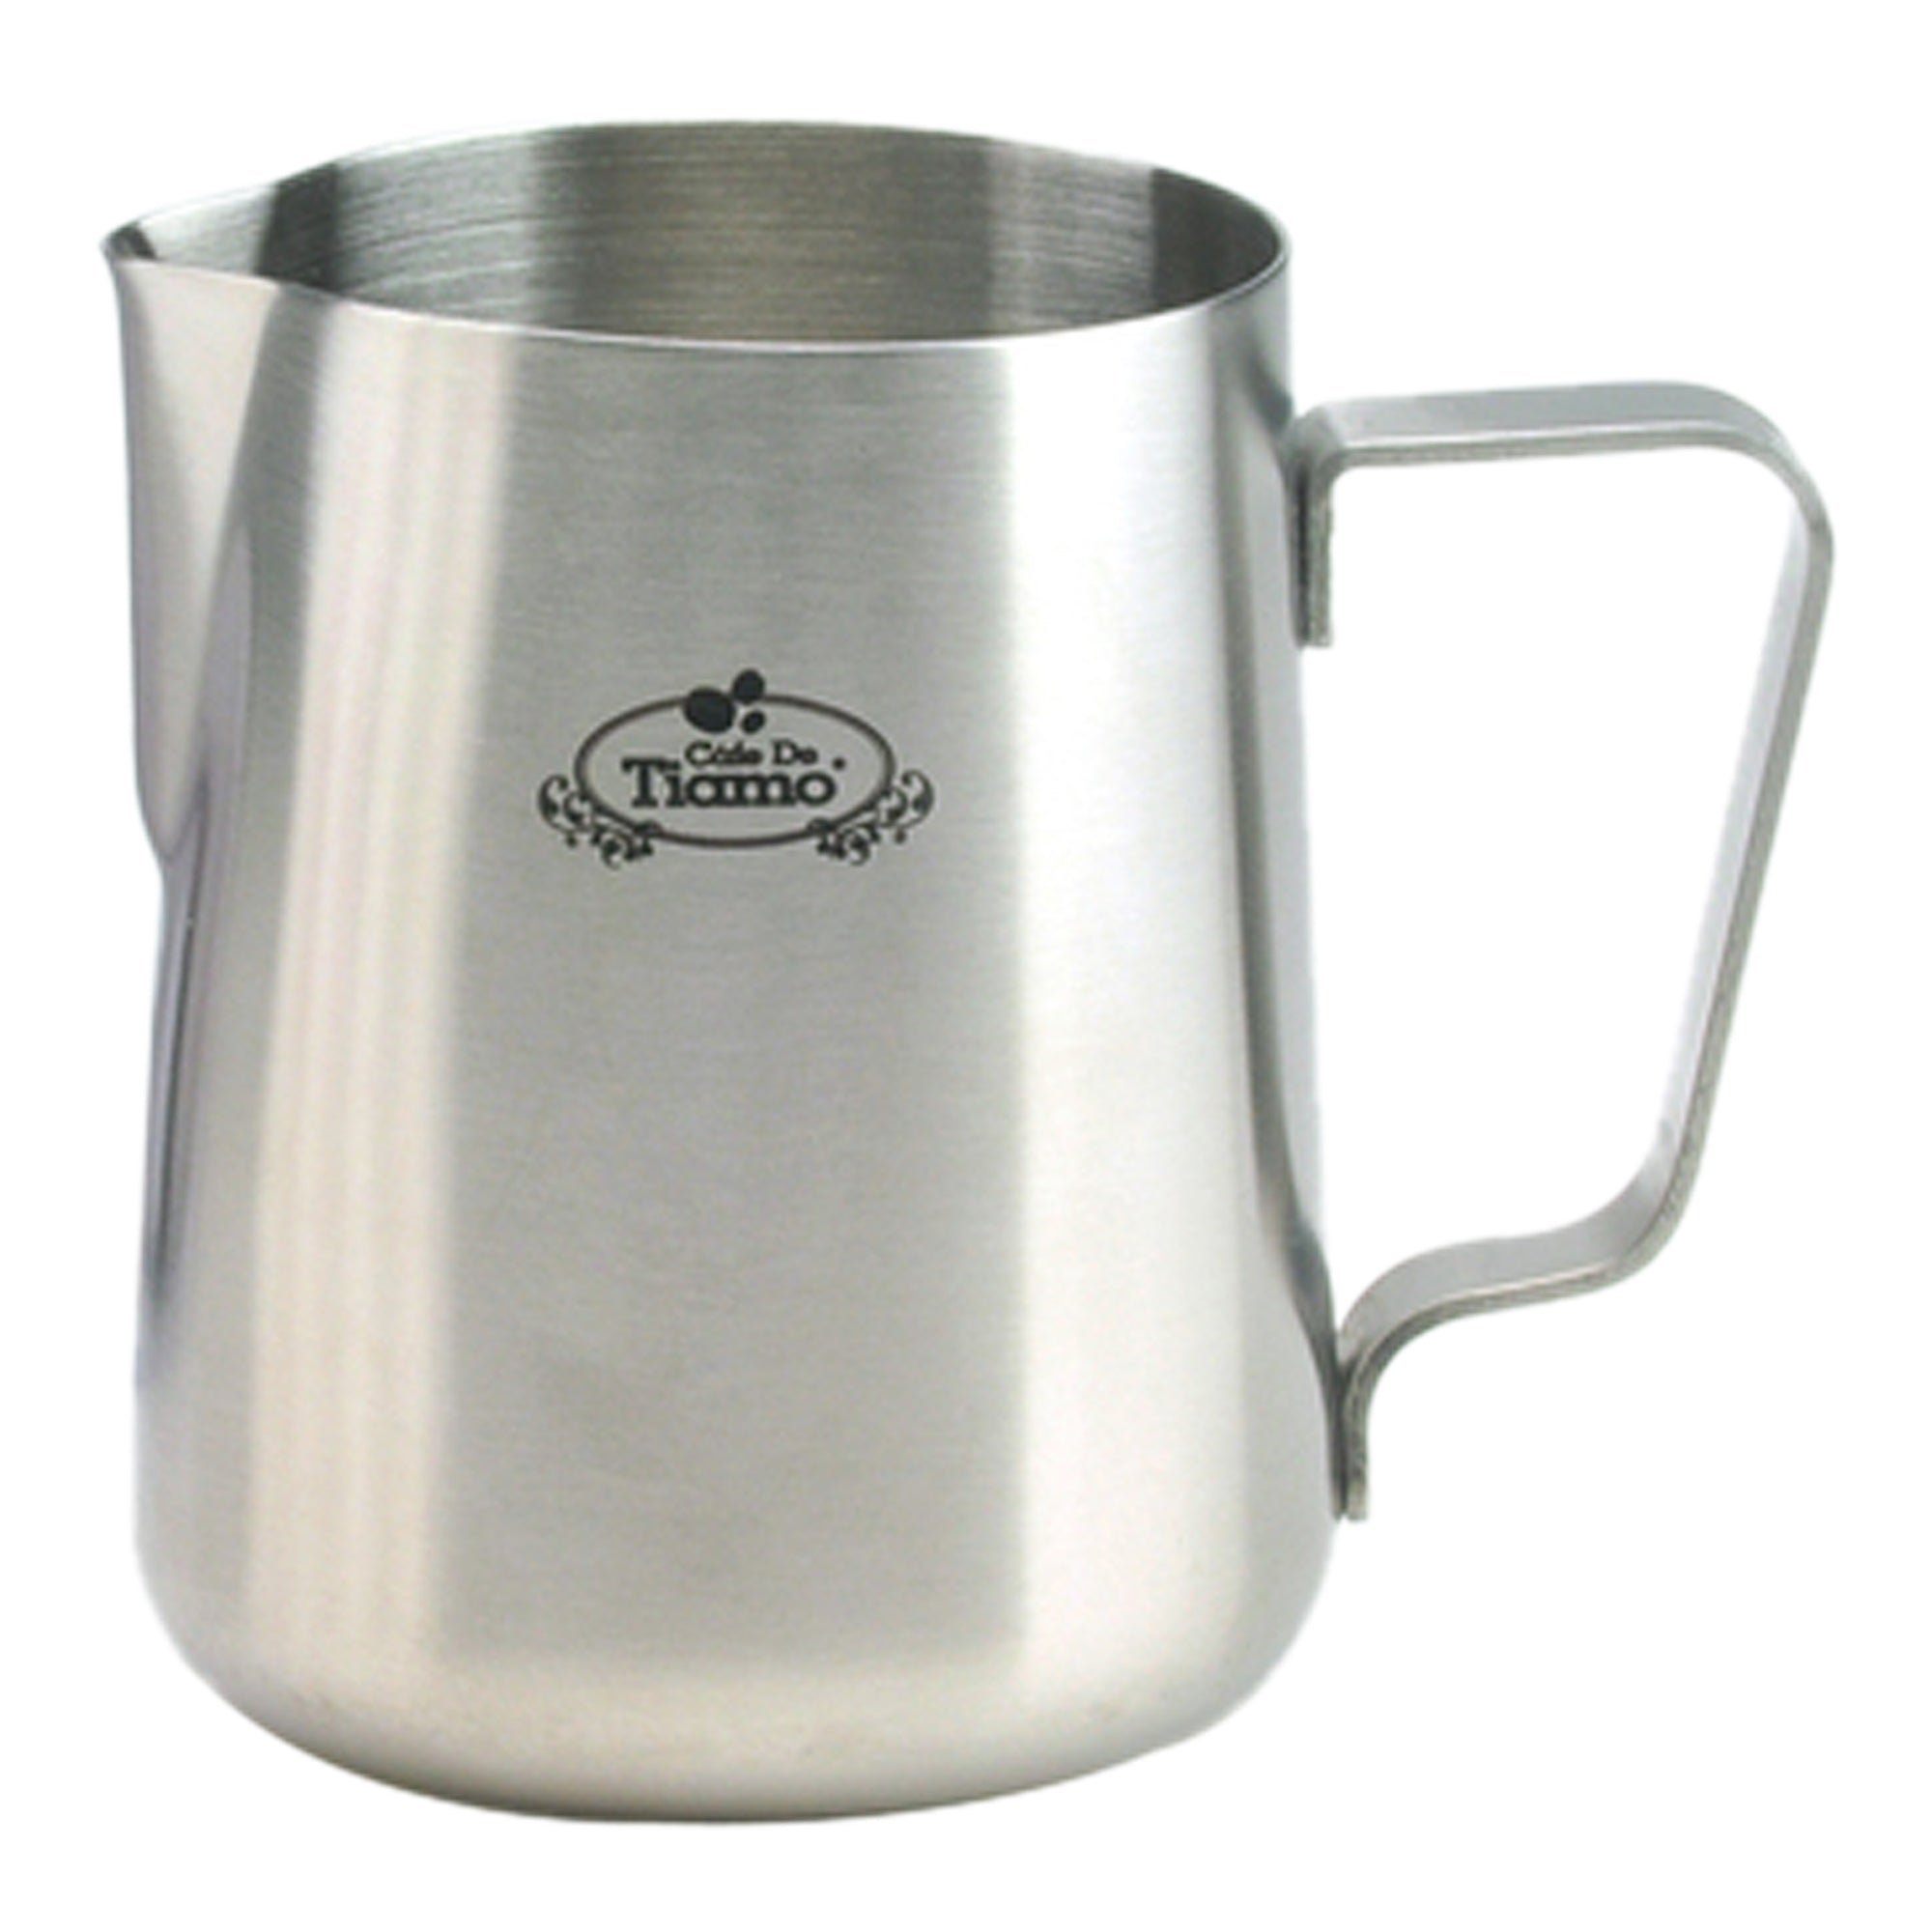 Tiamo Pitcher 0,6L sand polished - Espresso Gear